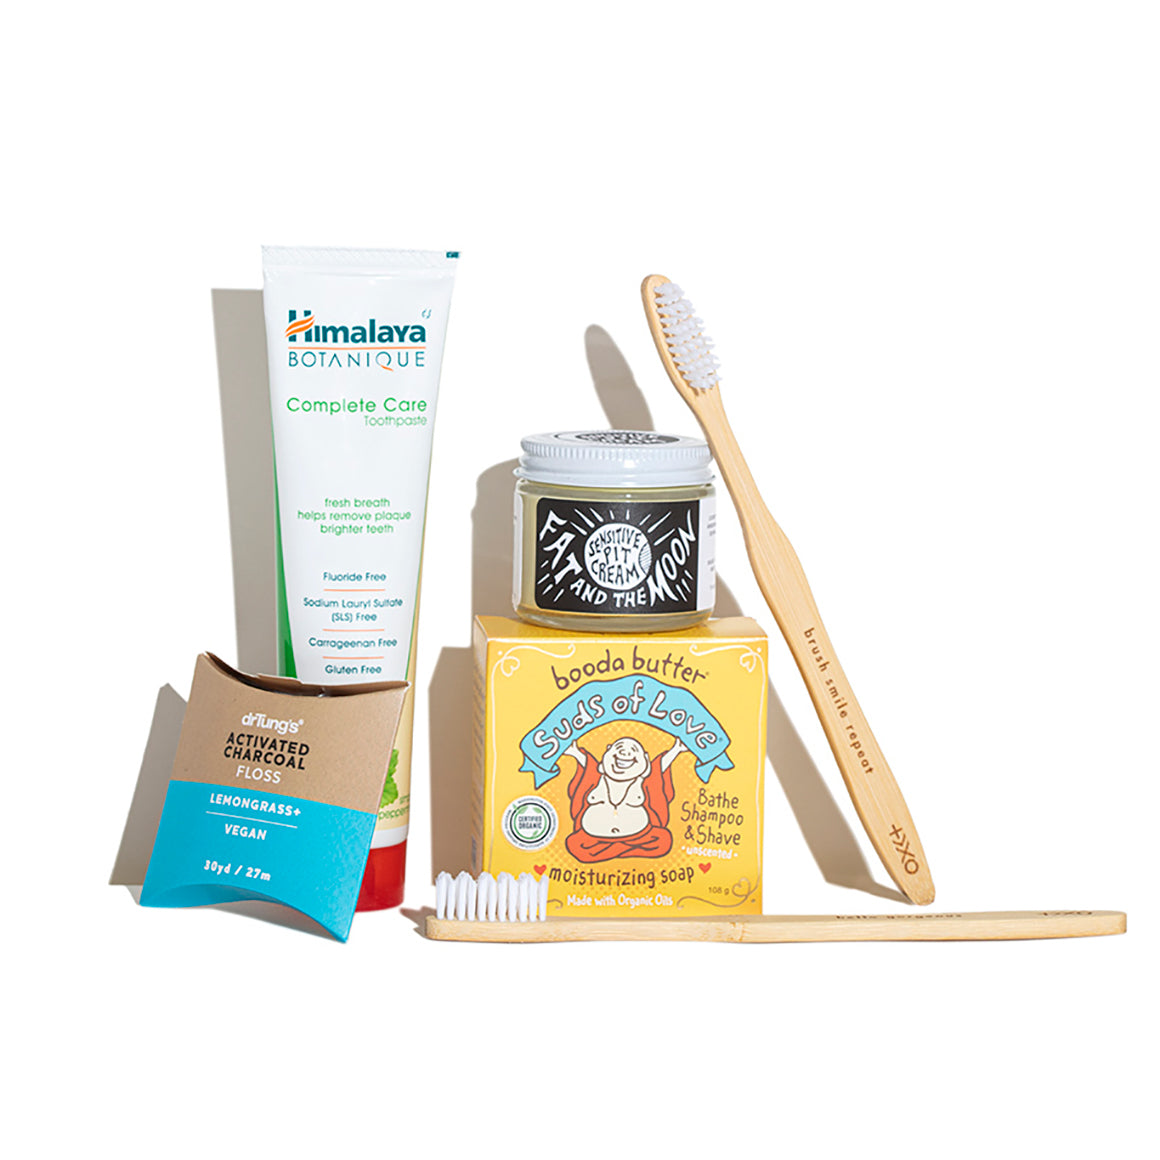 Products included in the Natural Toiletries Kit